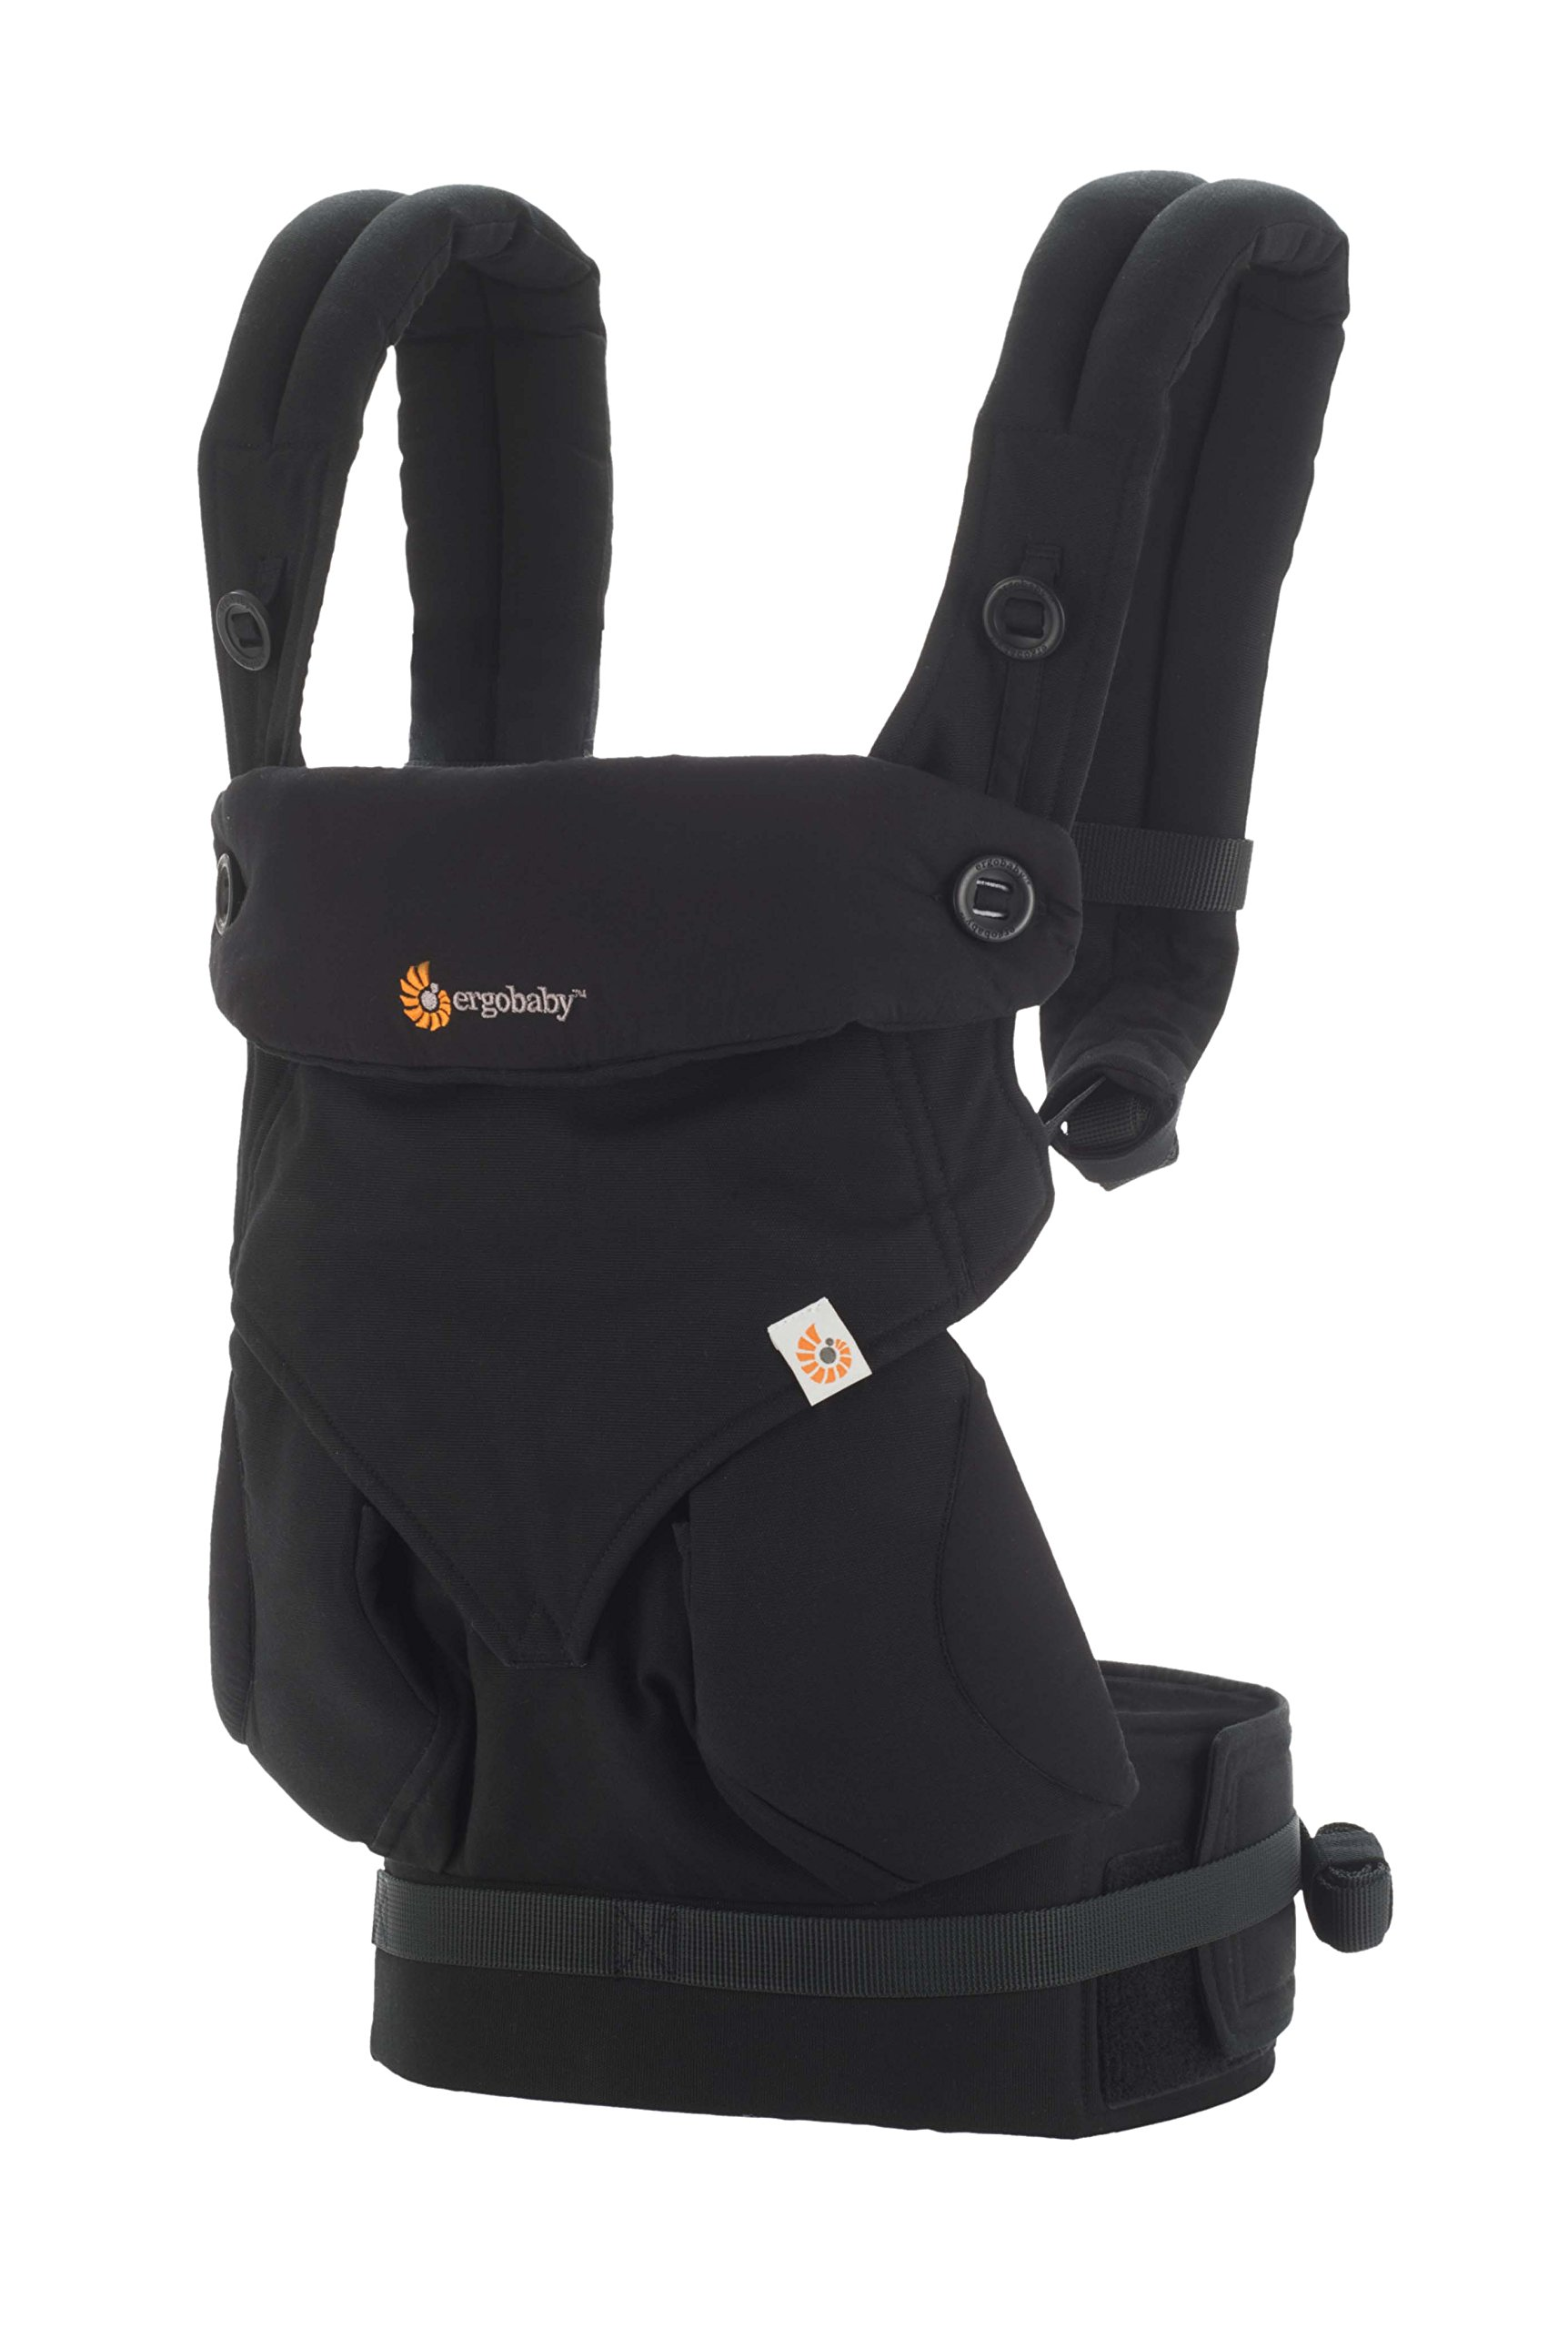 Ergobaby Baby Carrier up to 3 Years (12-45 lbs) 360 Pure Black, 4 Ergonomic Carry Positions, Front Facing Baby Carrier, Child Carrier Backpack Ergobaby Ergonomic baby carrier with 4 ergonomic carry positions: front-inward, back, hip, and front-outward. The carrier is suitable for babies and toddlers weighing 5.5-20 kg (12-45 lbs), and can be used as a back carrier. Also with insert for newborn babies weighing 3.2-5.5 kg (7-12 lbs), sold separately. NEW - The waistbelt with lumbar support can be worn a little higher or lower to support the lower back and provide optimal comfort, and has adjustable padded shoulder straps. The carrier is suitable for men and women. Maximum baby comfort - The structured bucket seat supports the correct frog-leg position for the baby. The carrier also has a padded, foldable head and neck support. Ergobaby carriers are a new take on the usual baby sling. 3